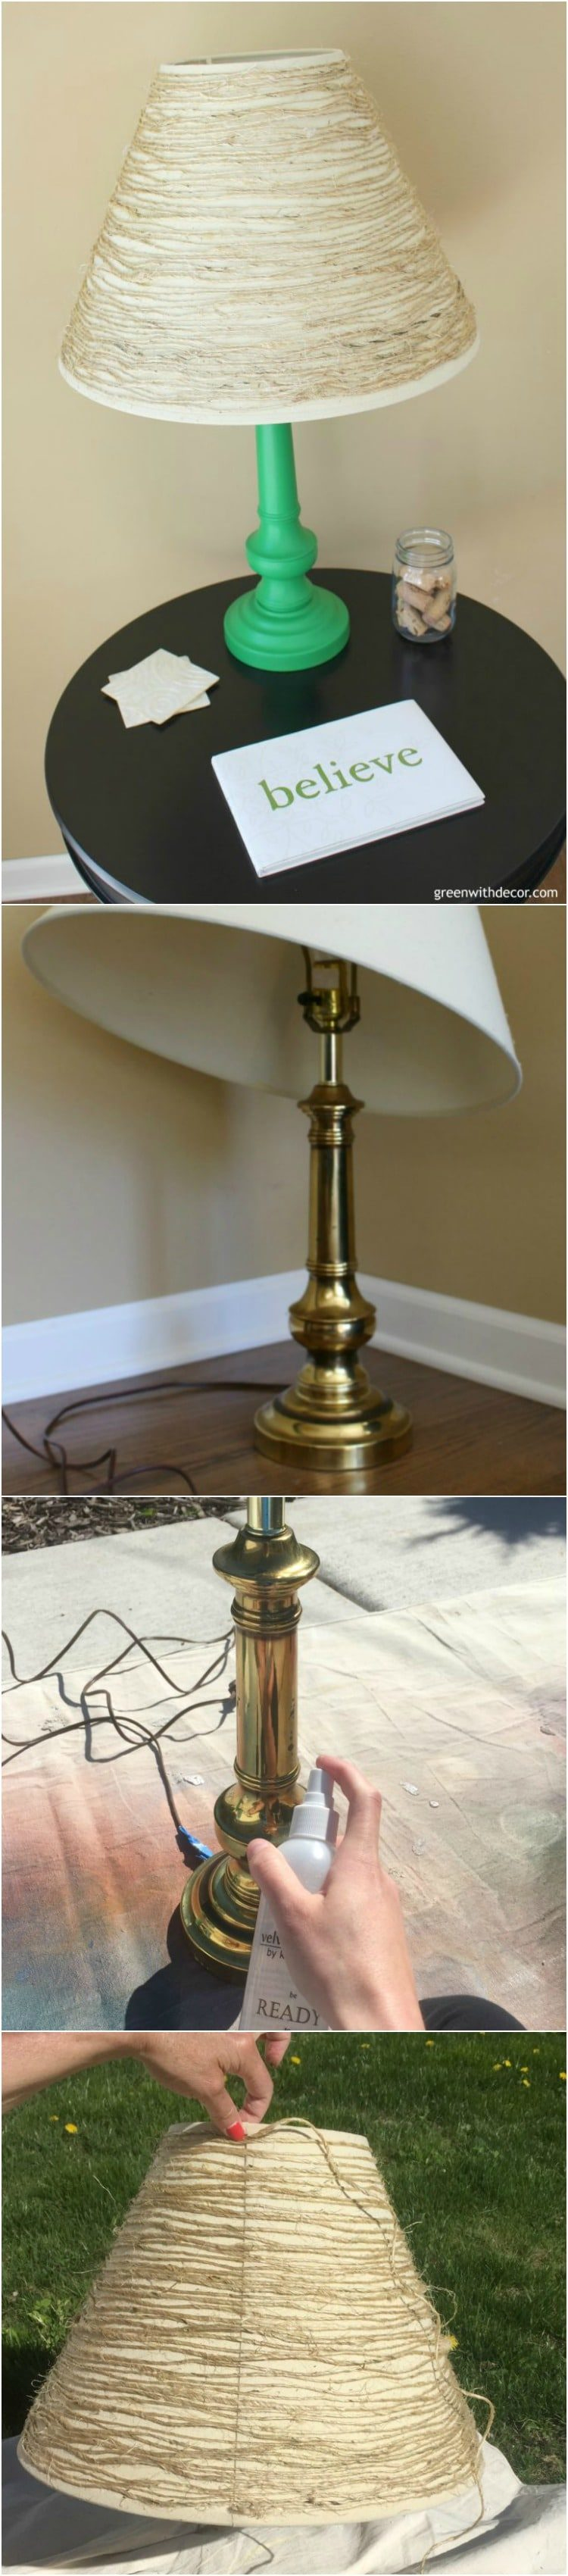 DIY Update an Old Table Lamp with Paint and Twine - table-lamps